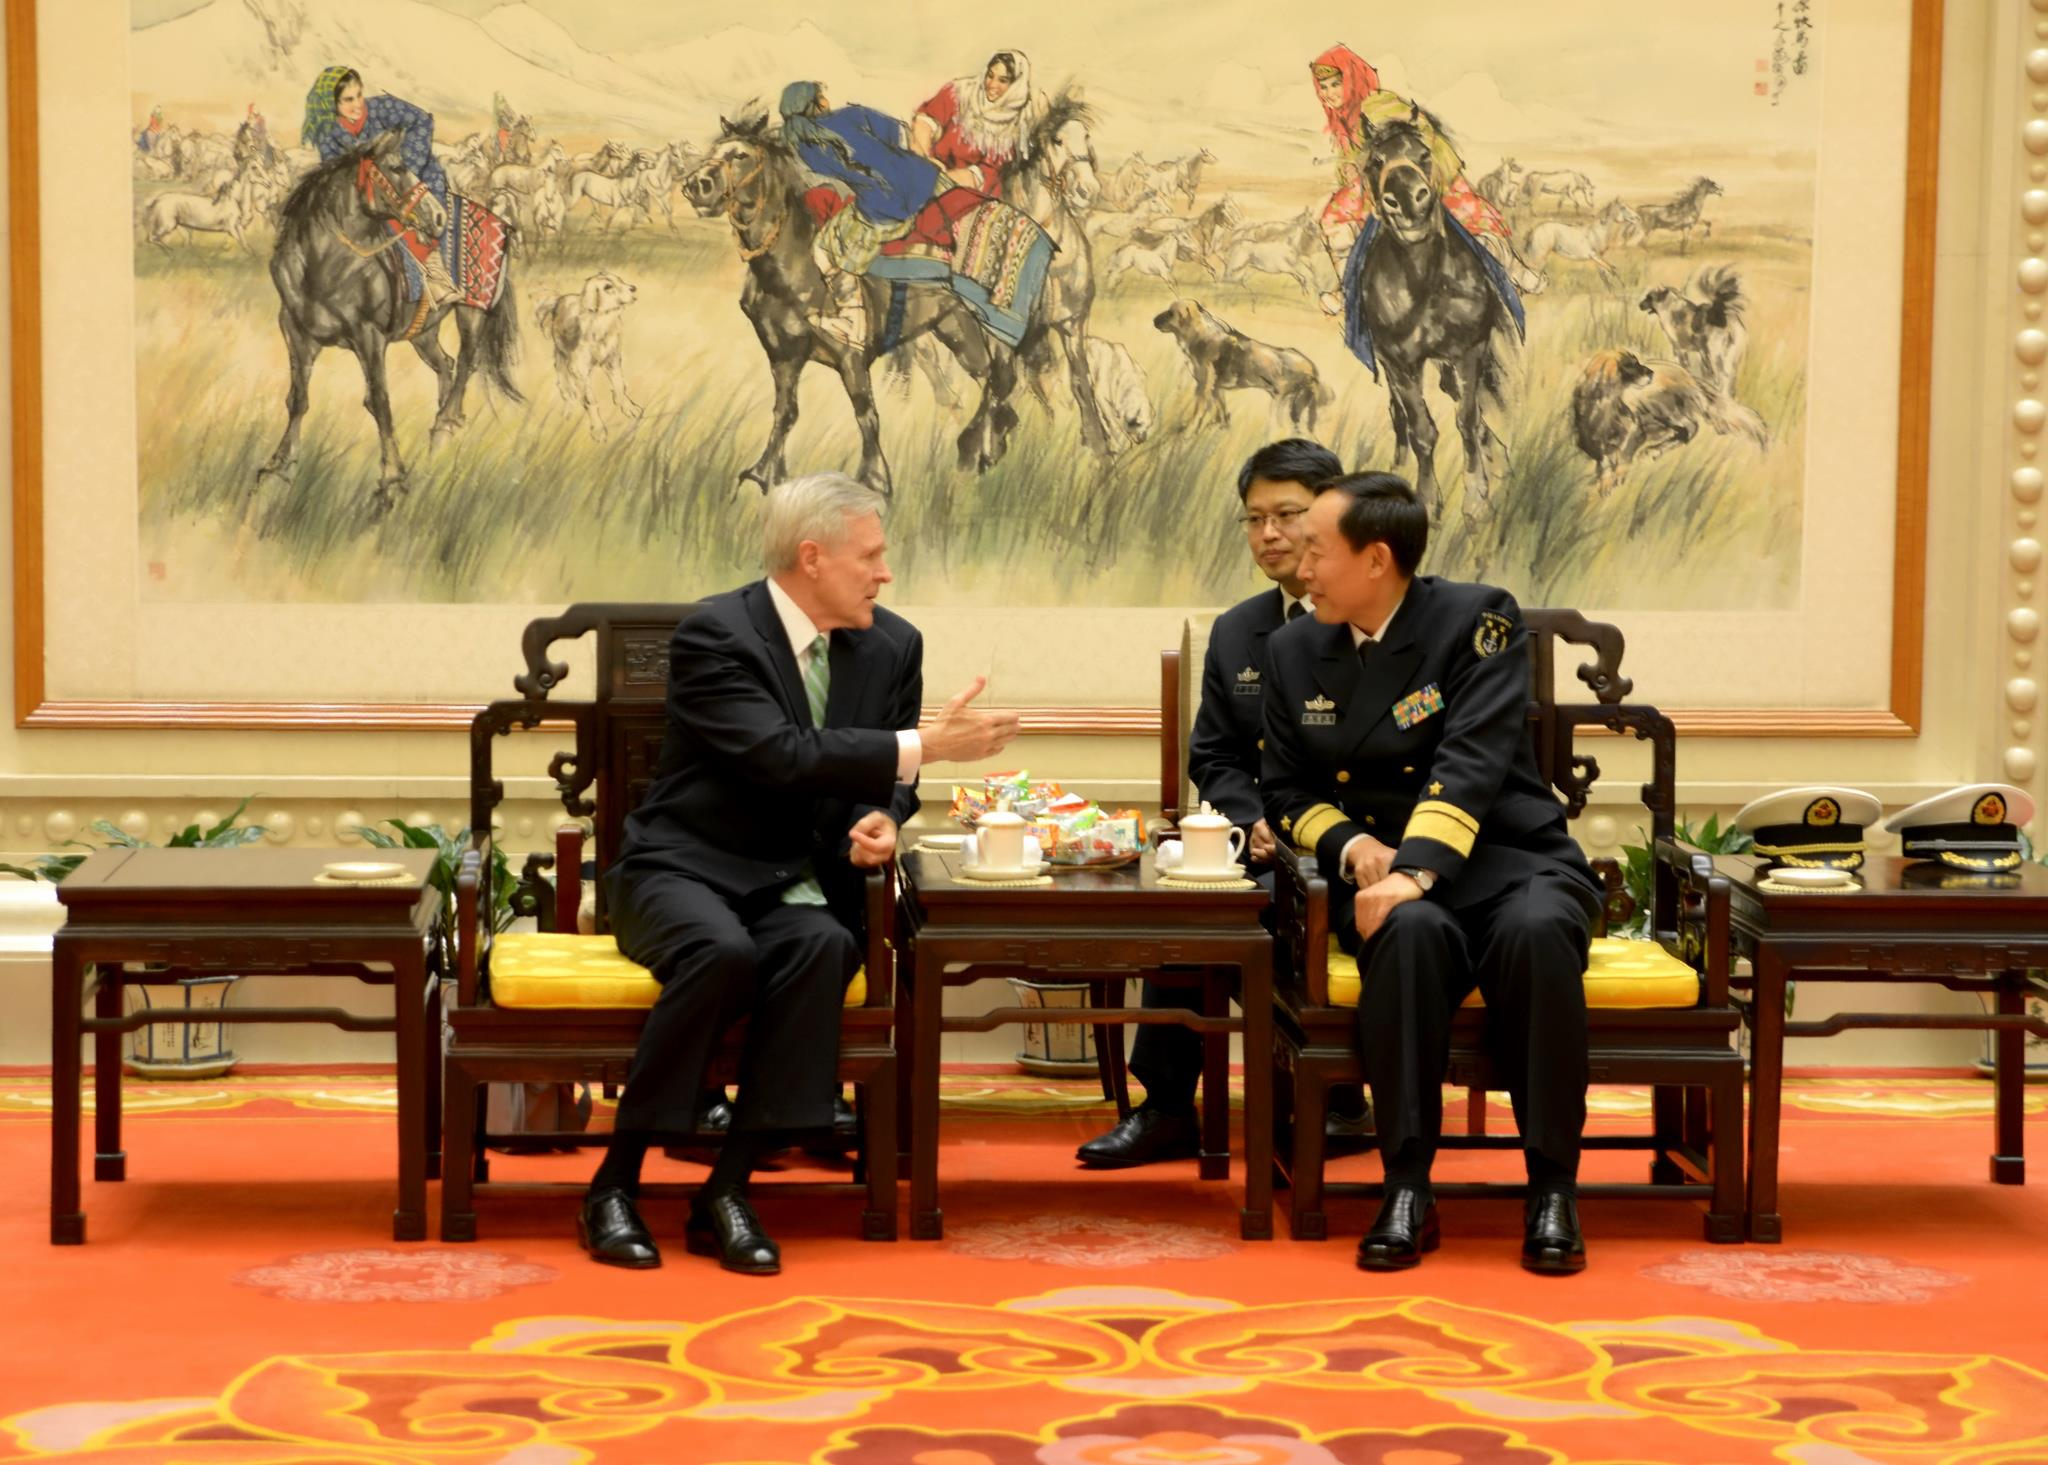 Guns and Military Secretary of the Navy Ray Mabus and Chinese Minister Discuss Seas